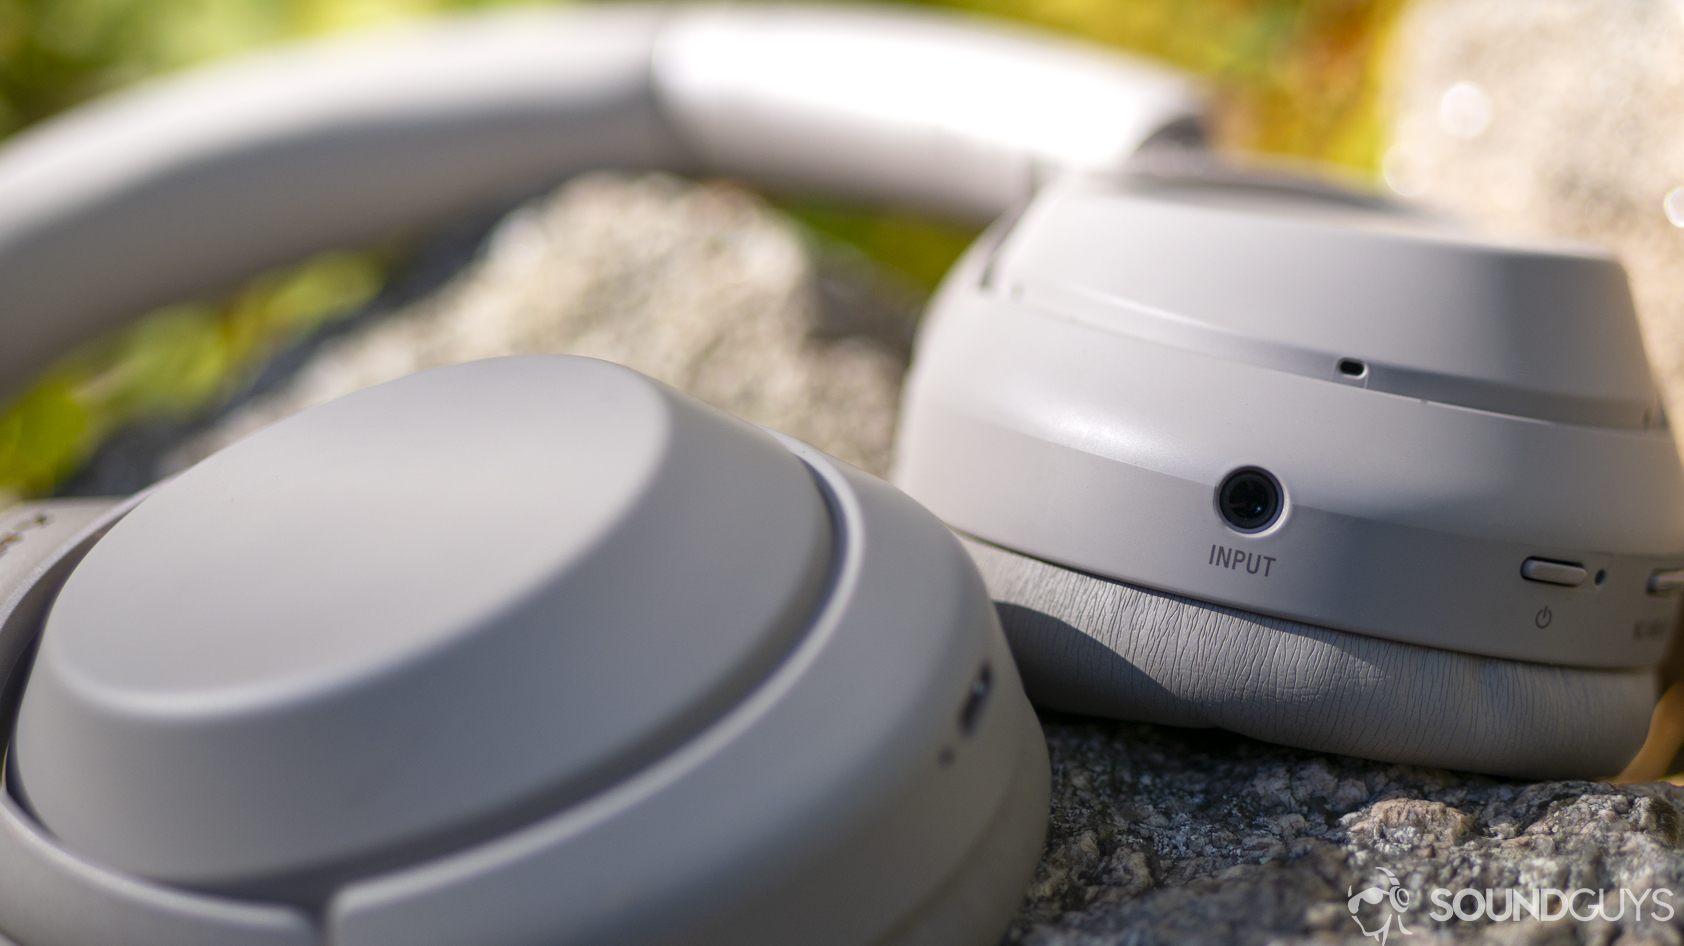 Sony WH-1000XM3 wireless Bluetooth headphones review